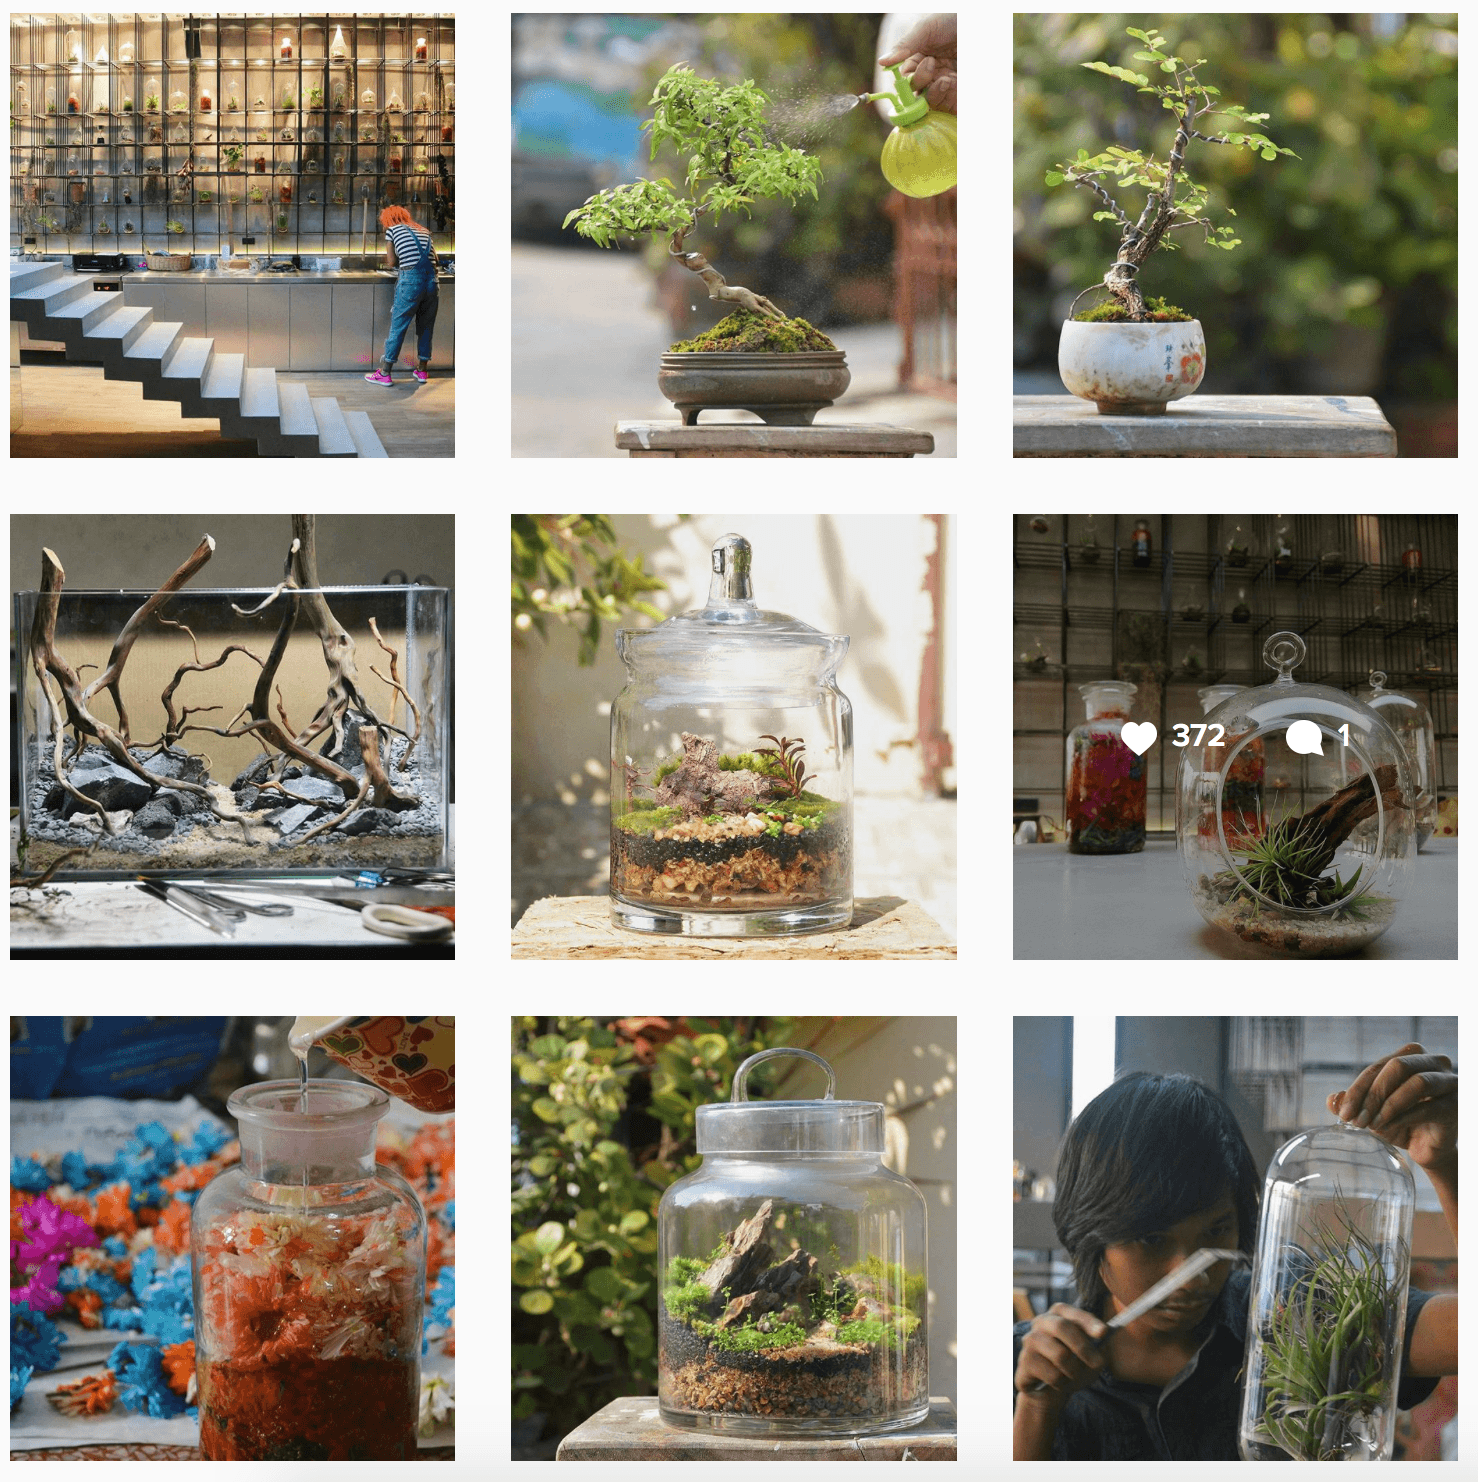 3 Instagram Accounts To Follow for Beautiful Terrarium Ideas